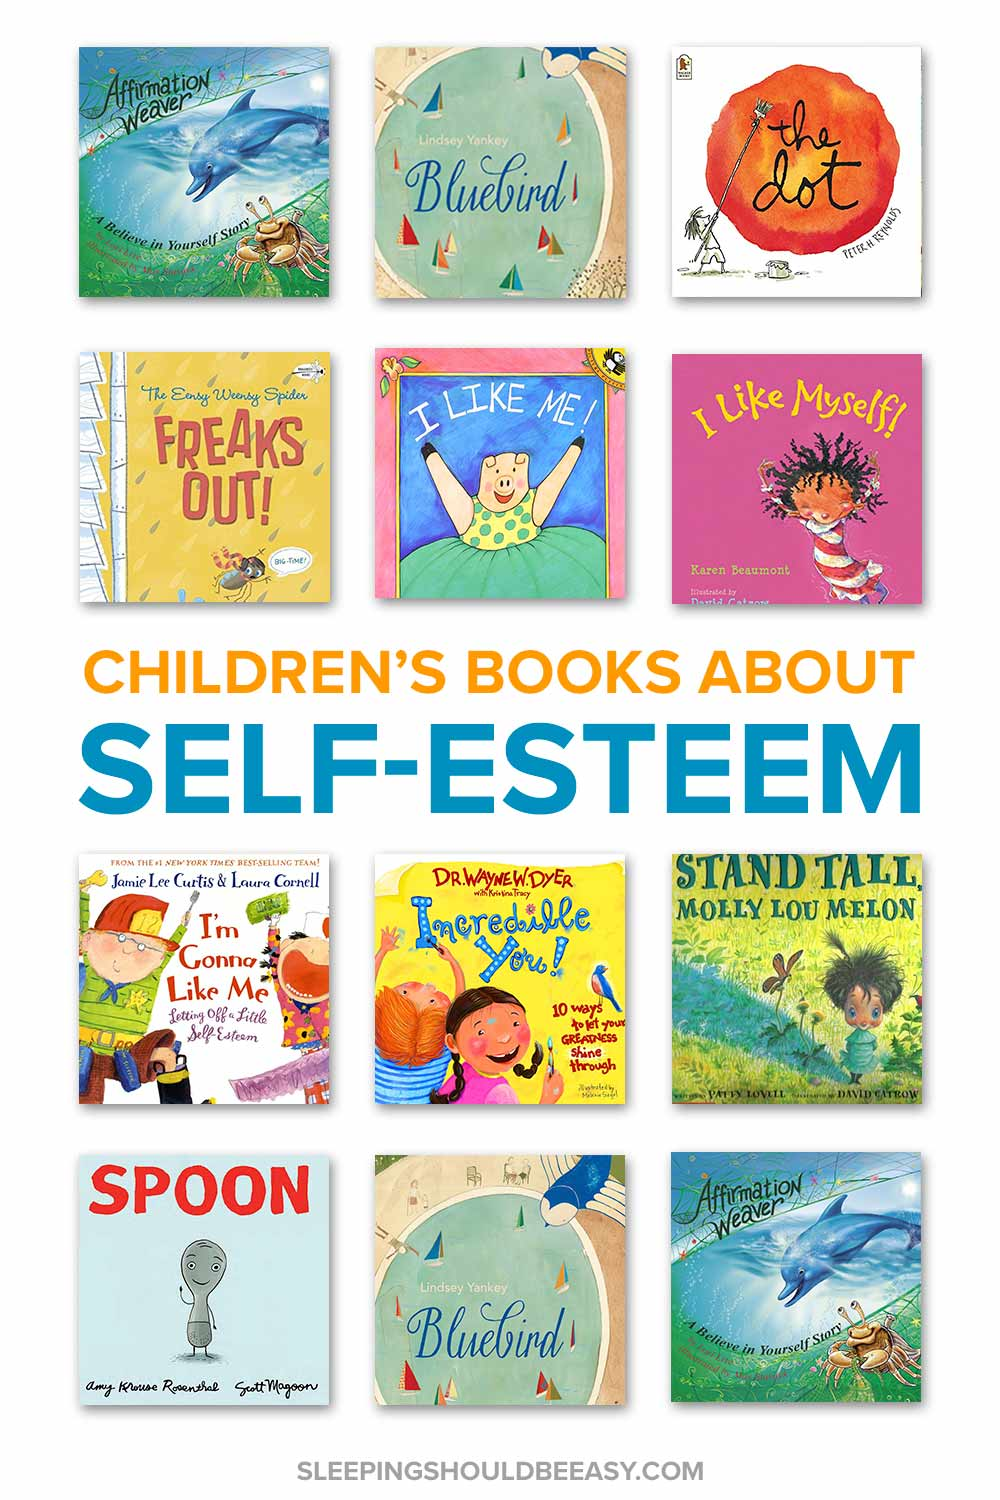 A collection of children's books about self esteem